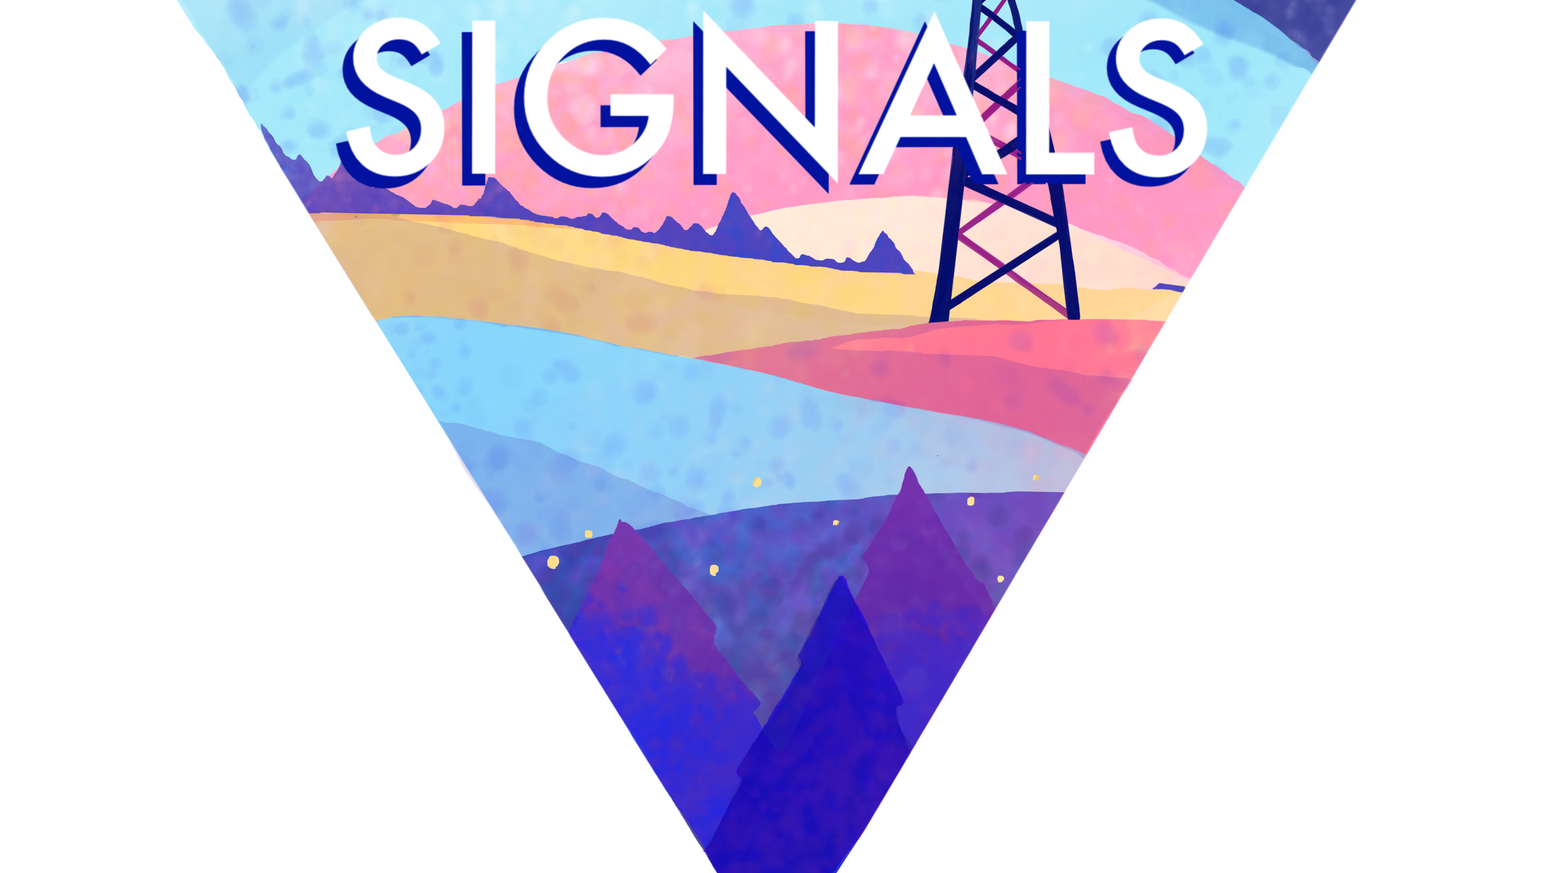 Signals is a game where you work at a radio station and make friends. The only problem is the world is ending from climate breakdown.